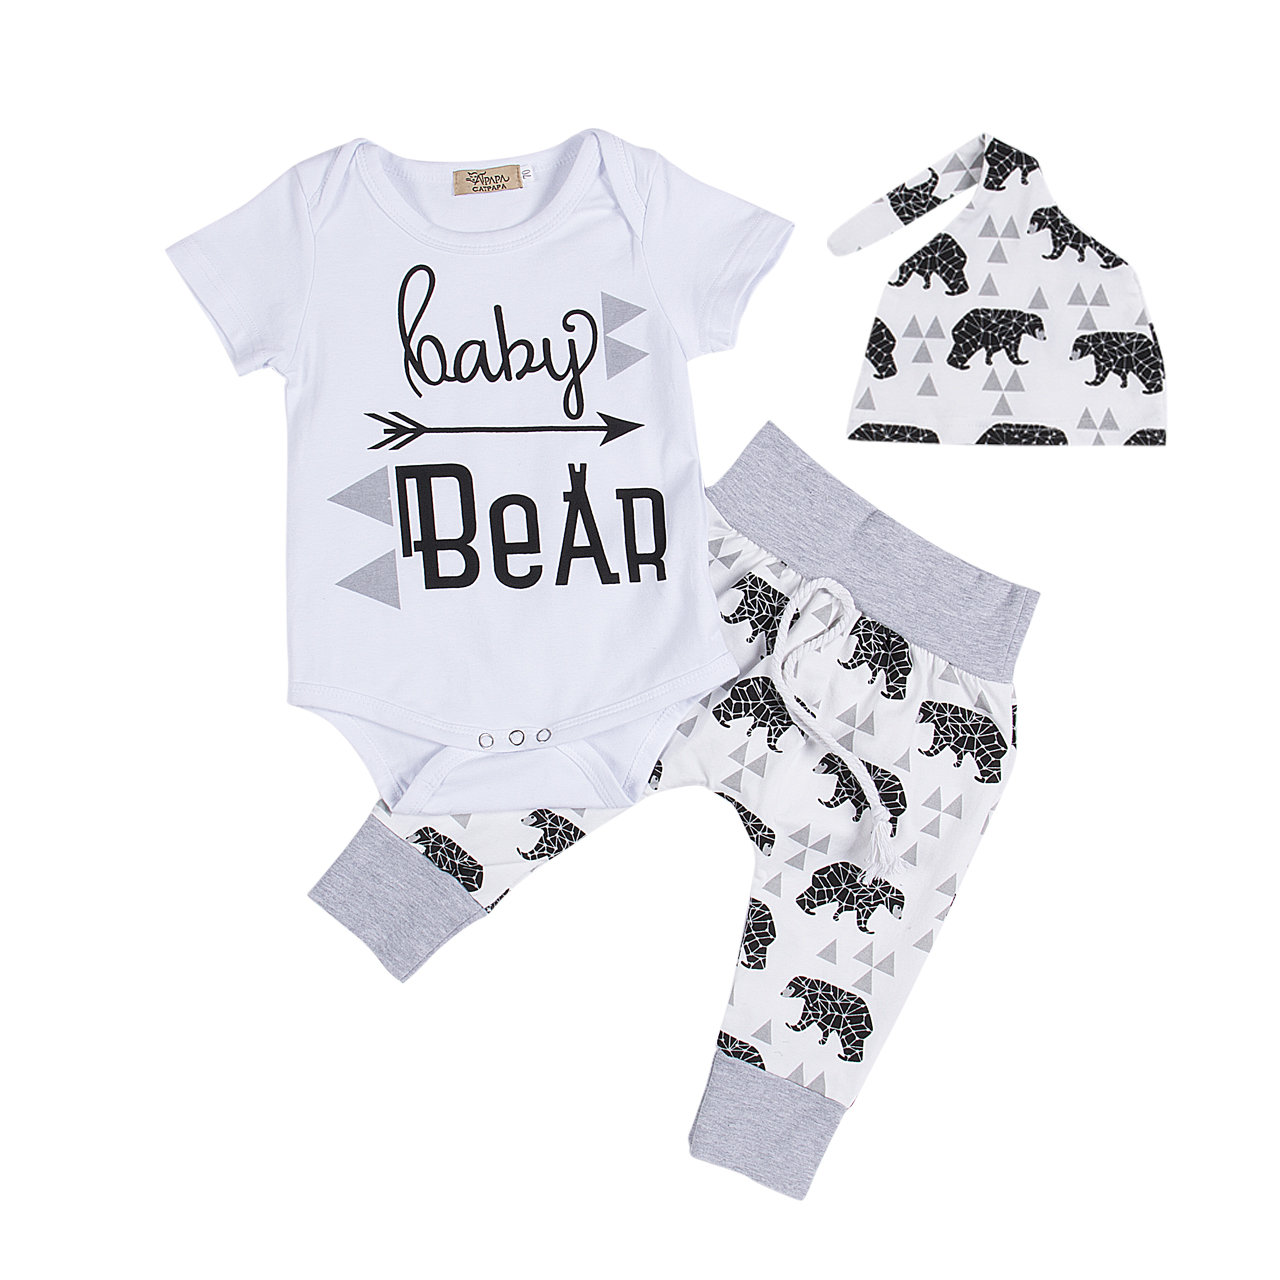 3PCS Set Newborn Infant Baby Clothes Short Sleeve Baby Bear Boys Girls Romper Pant Hat Outfit Bebek Giyim Clothing Costume 2017 newborn baby boy girl clothes floral infant bebes romper bodysuit and bloomers bottom 2pcs outfit bebek giyim clothing